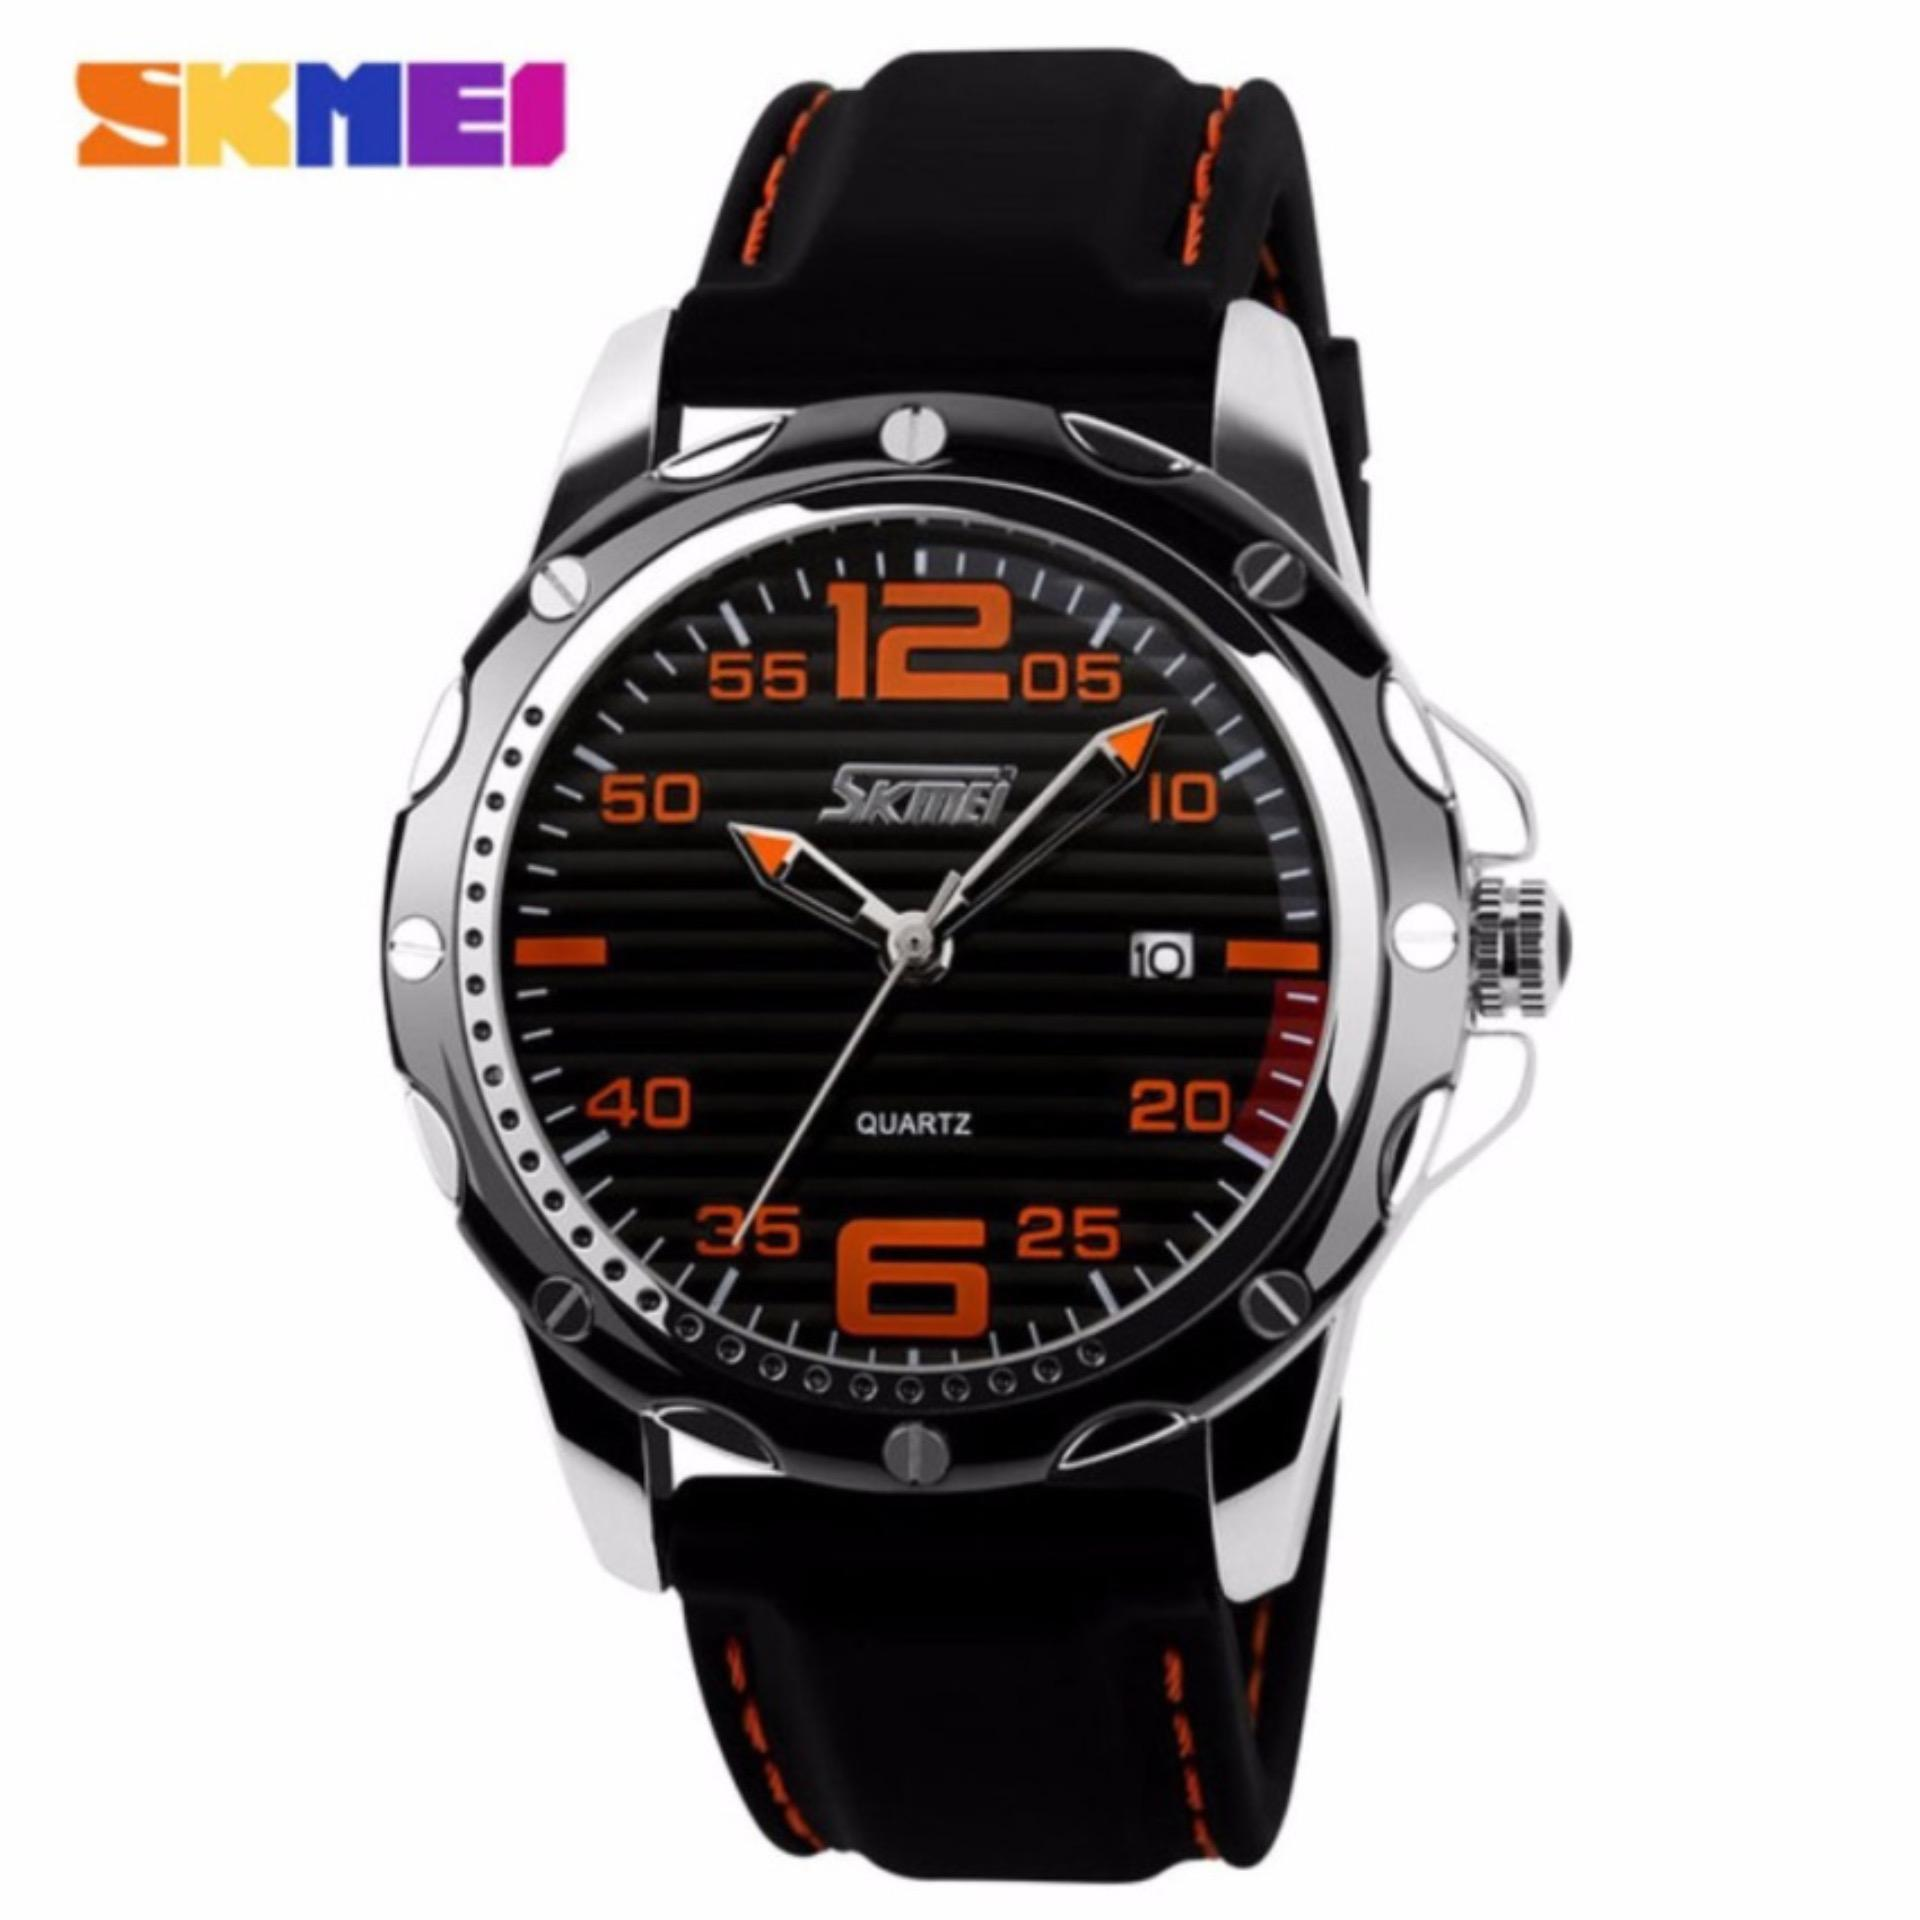 Harga Skmei 0992 Sport Quartz Men Casual Watch Calendar Date Work For Luxury Brand Men Dress Wristwatch 30M Waterproof Hitam Orange Skmei Terbaik